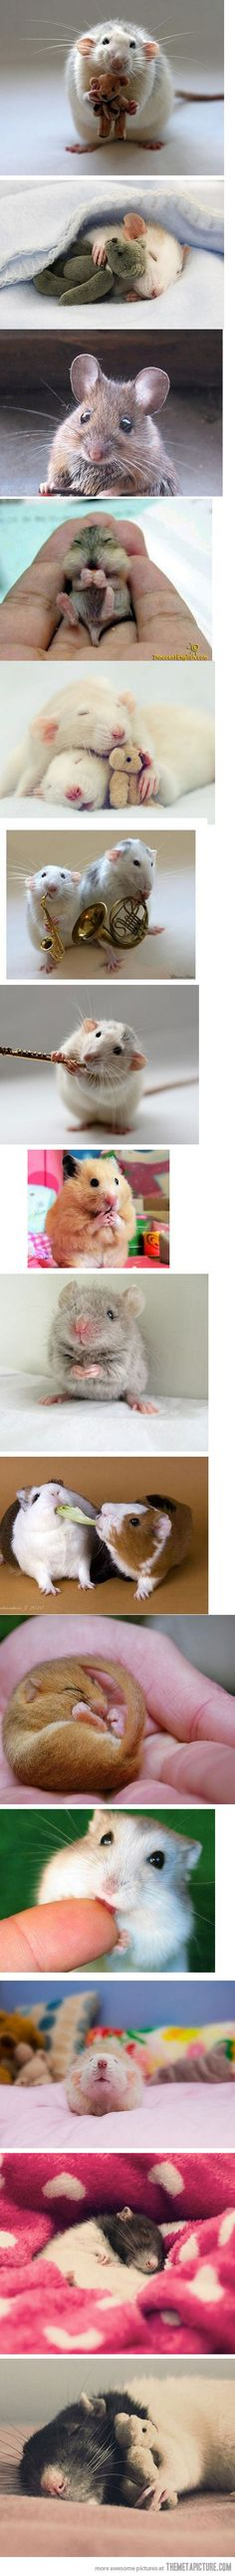 Funny and heartwarming at the same time. I love tiny pet rodents :D